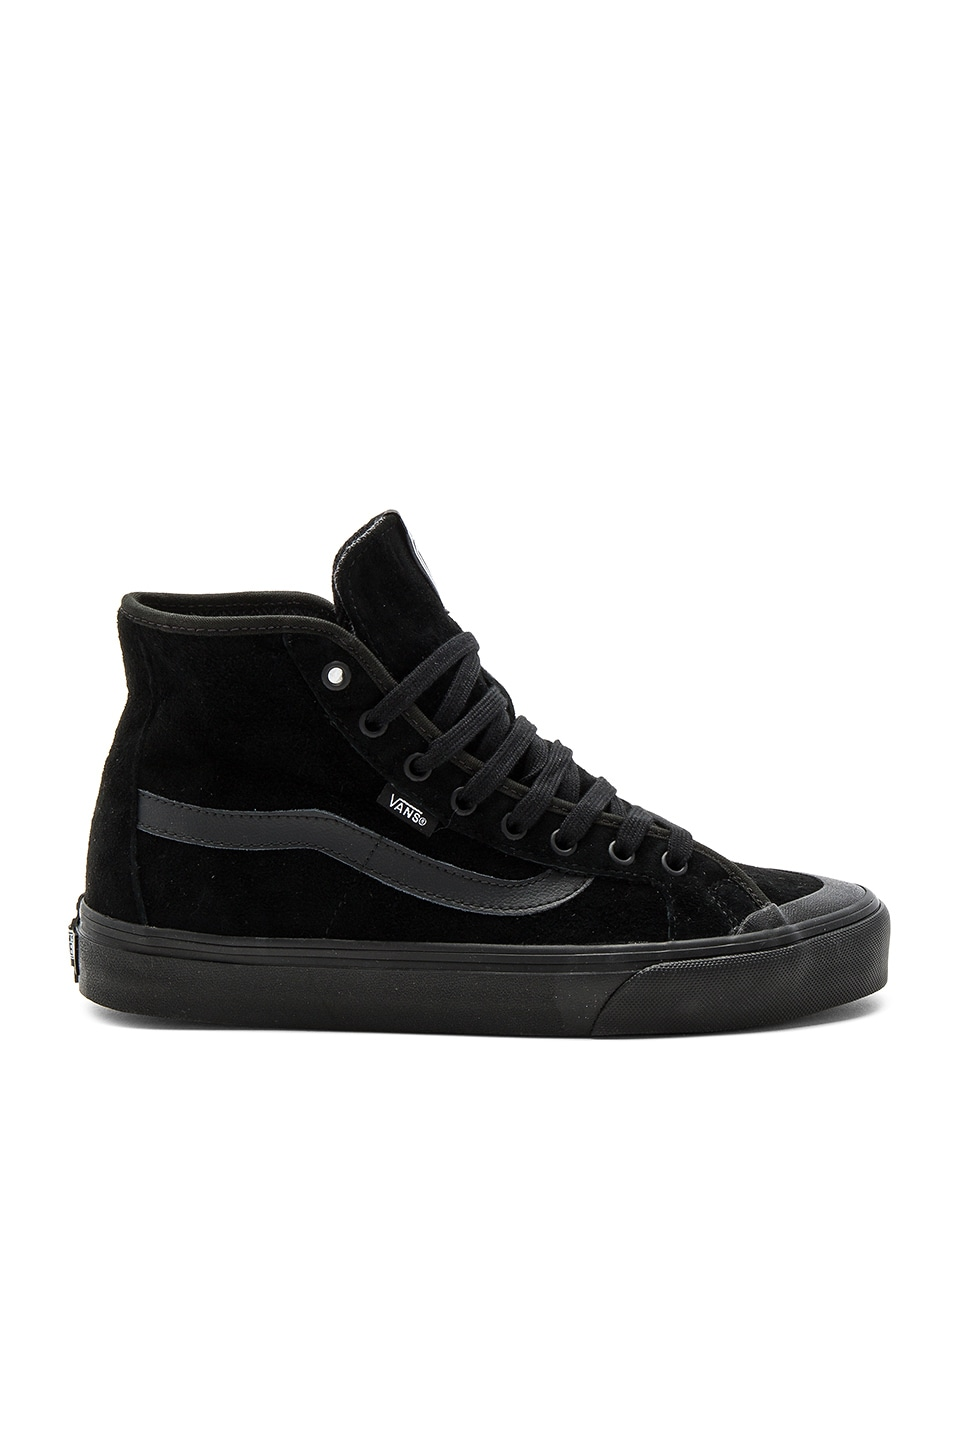 Vans Black Ball Hi SF MTE in Black & Black